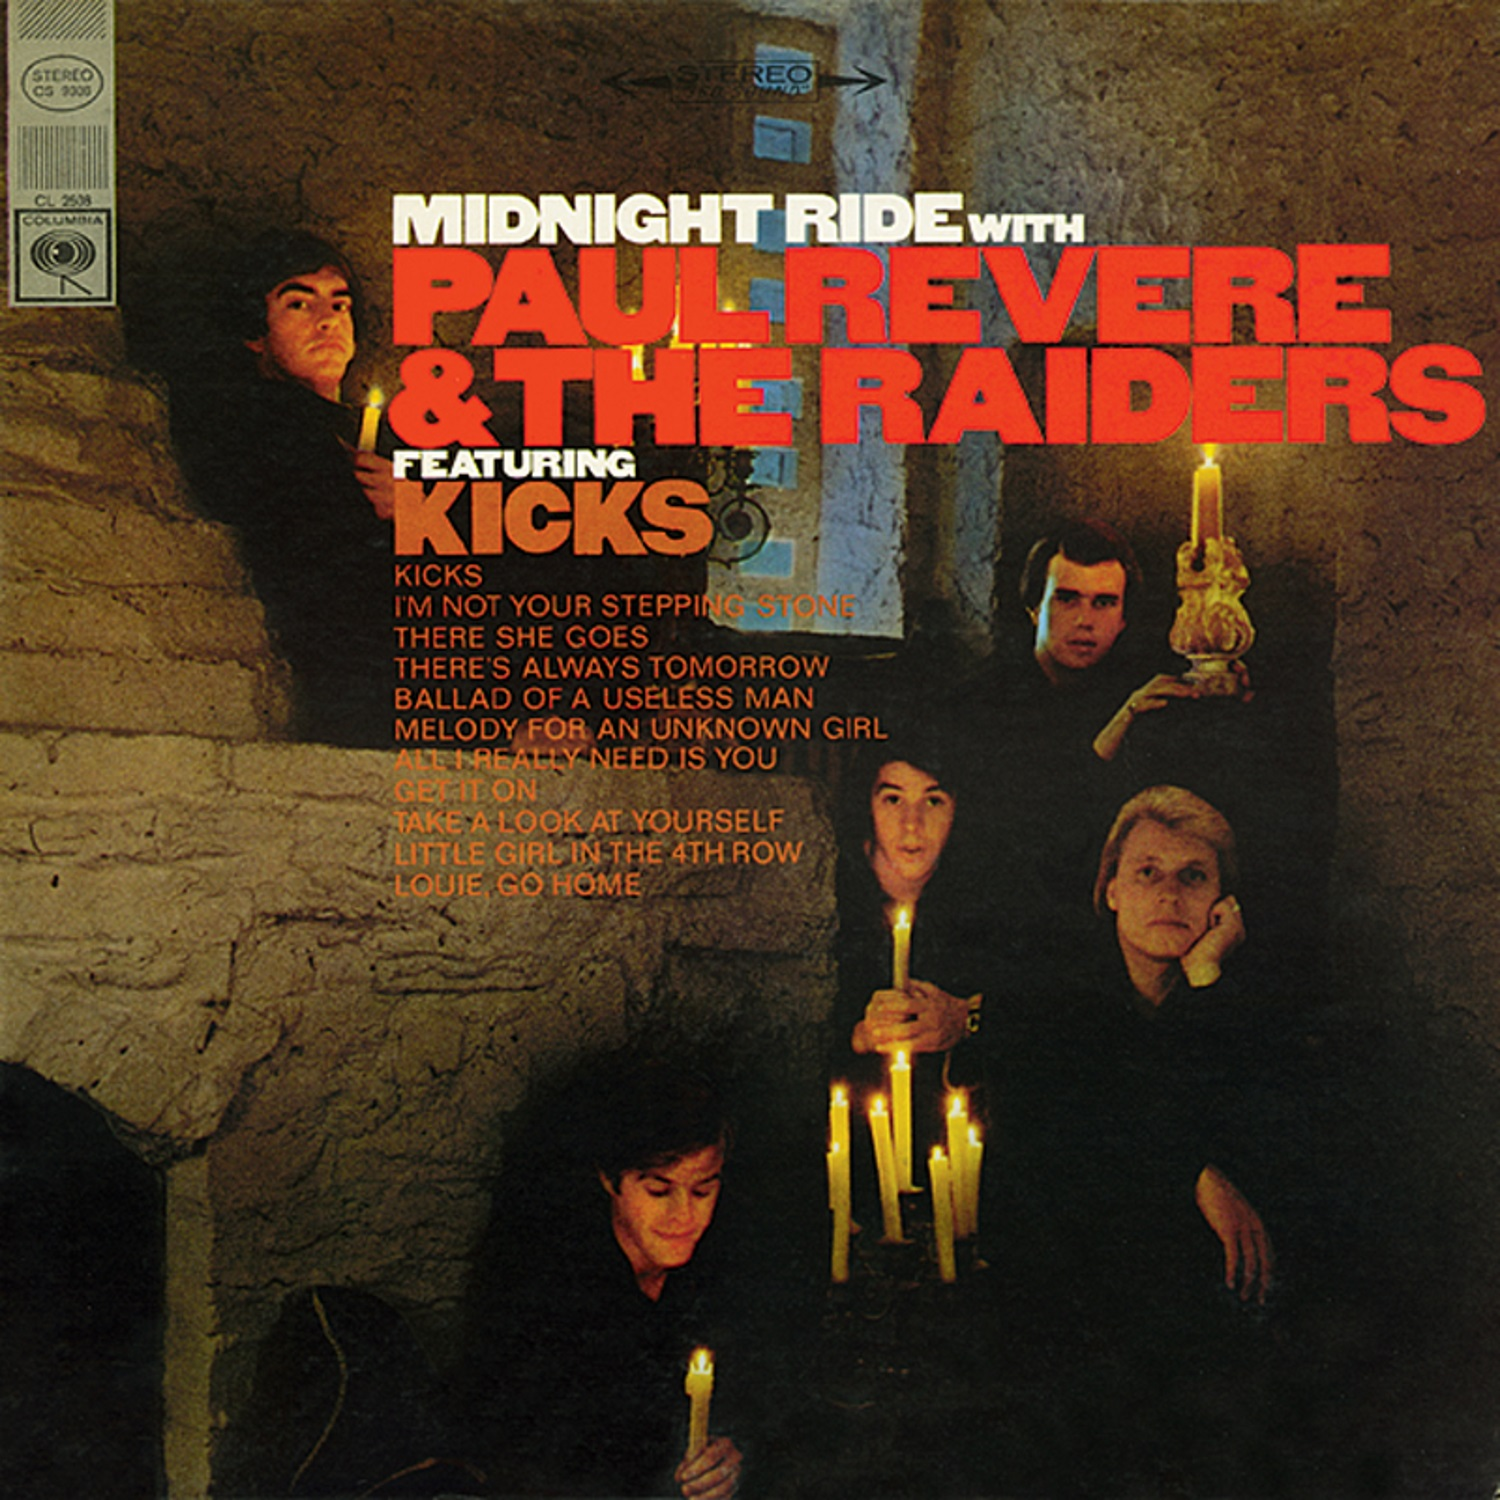 Paul Revere & the Raiders - Midnight Ride - CD